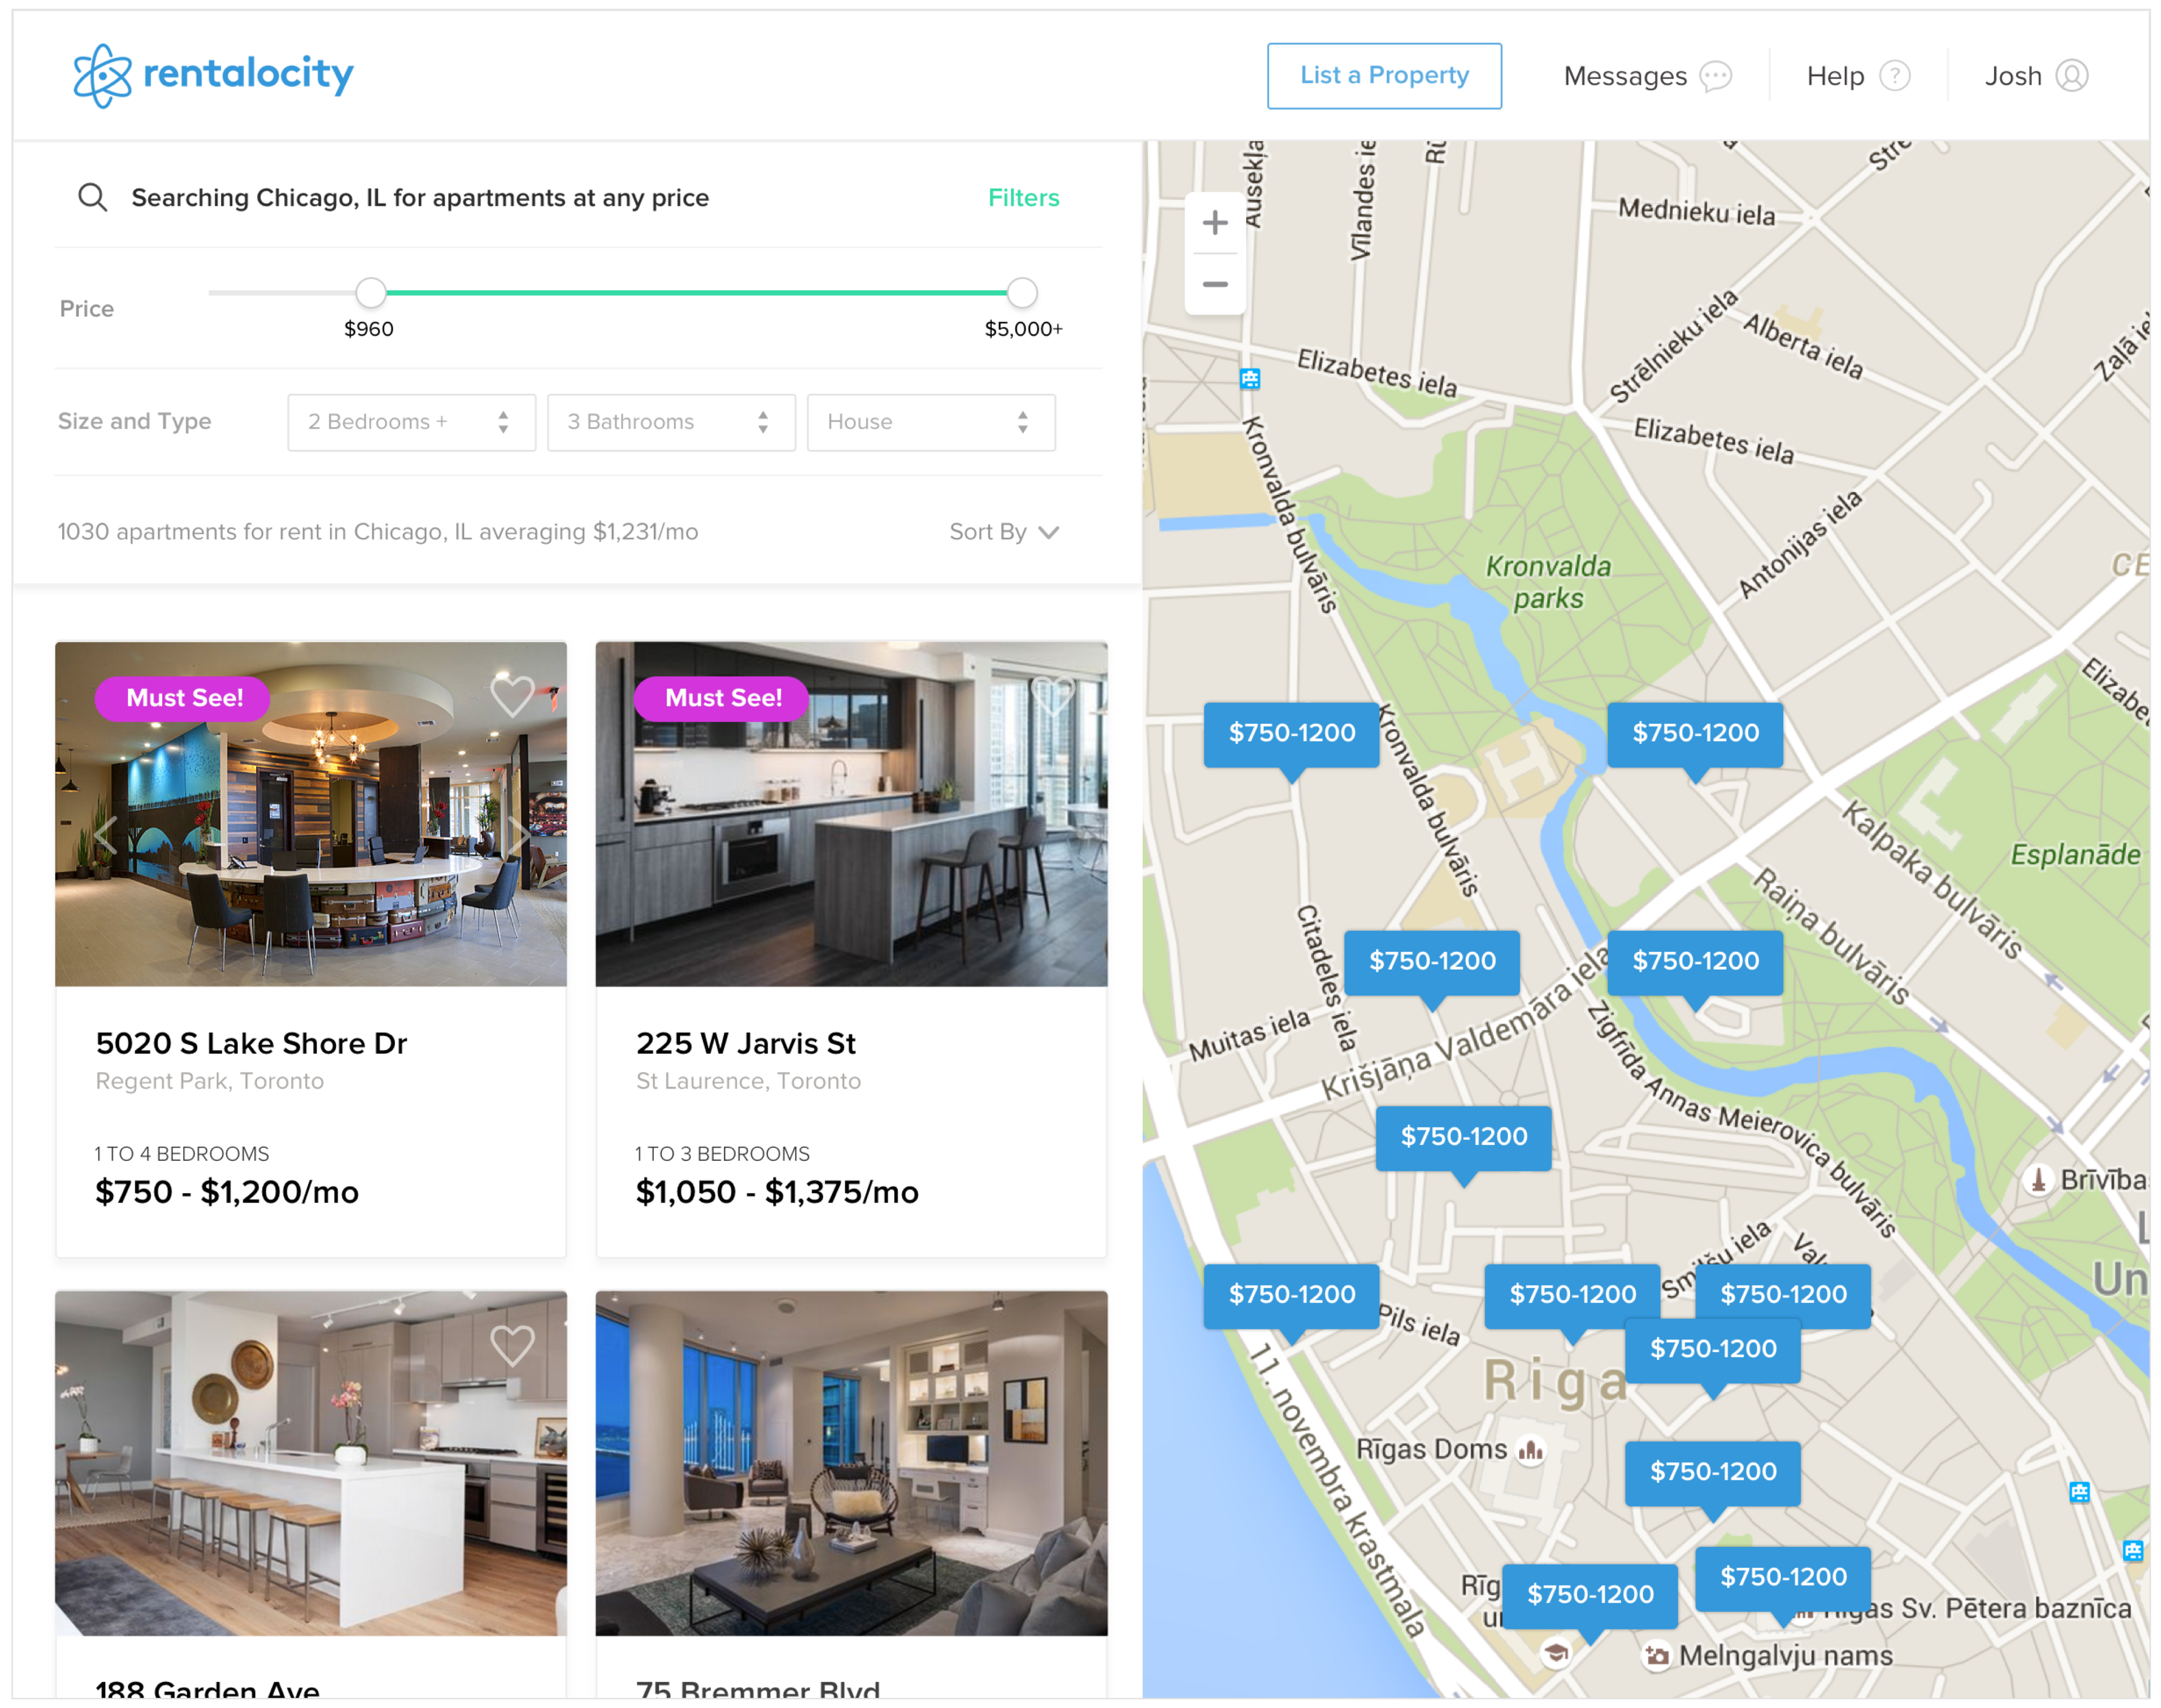 Mls Real Estate Map Canada Canada Real Estate. Rentalocity is a modern real estate… | by